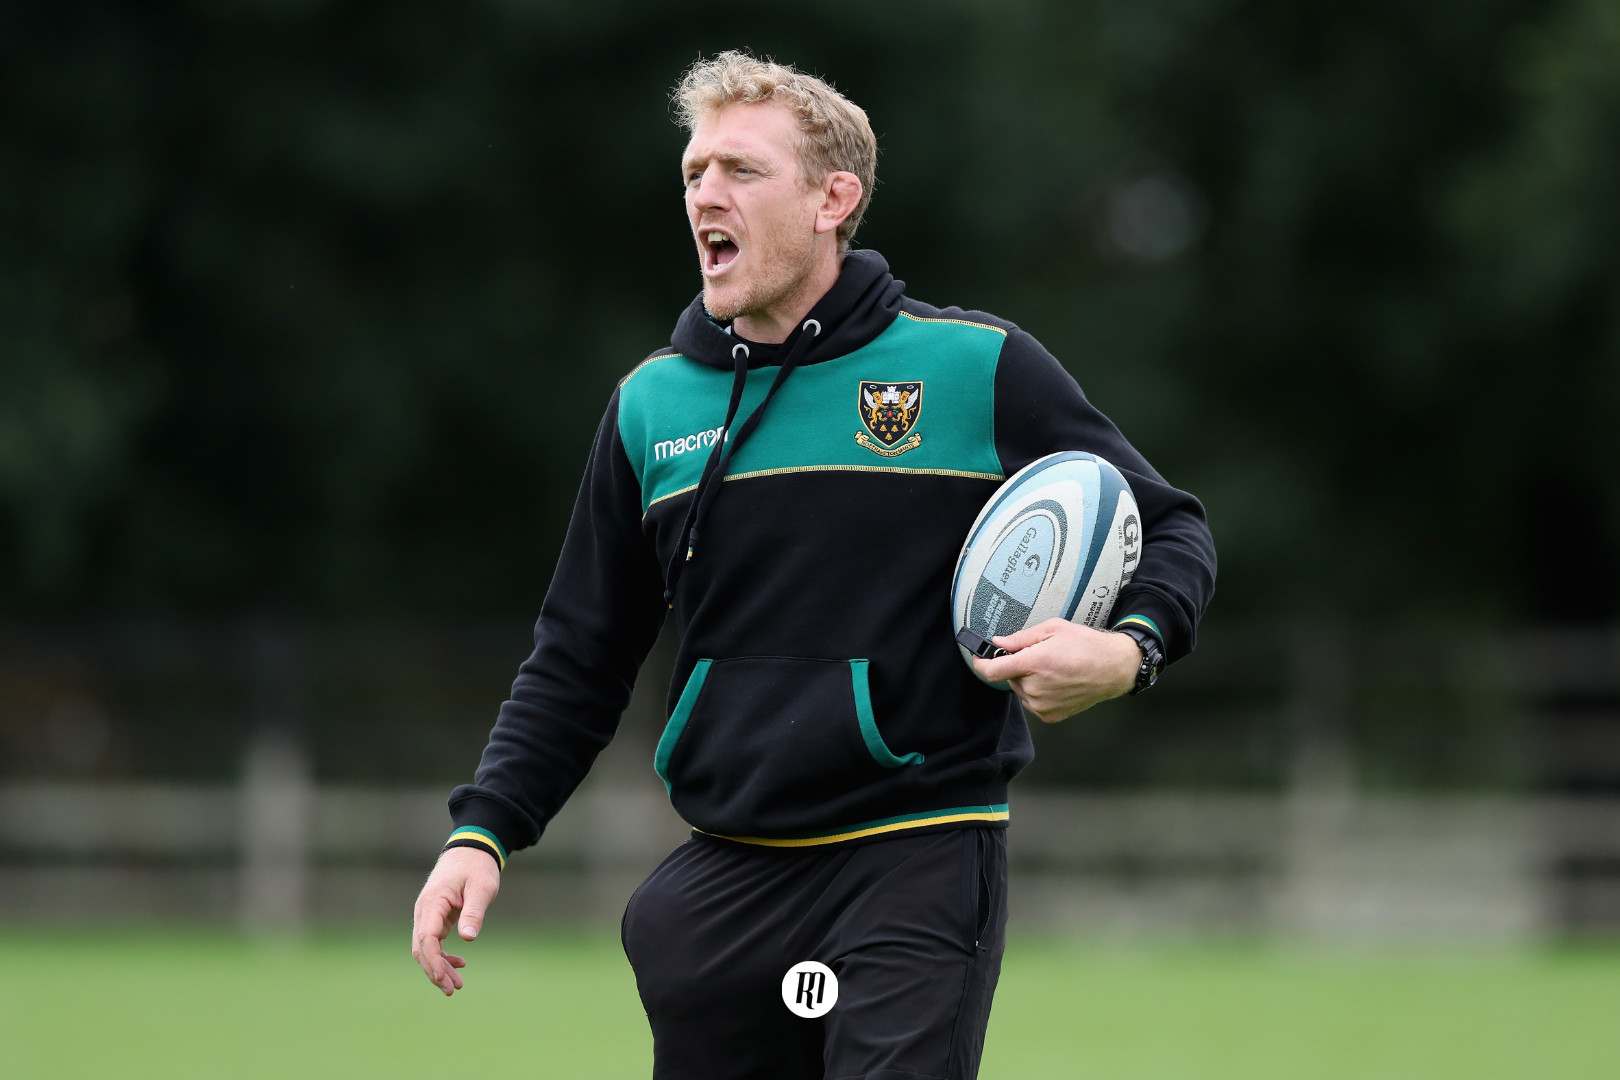 Sam Vesty on Super Rugby coming to the Gardens, attacking philosophies and footballing youth